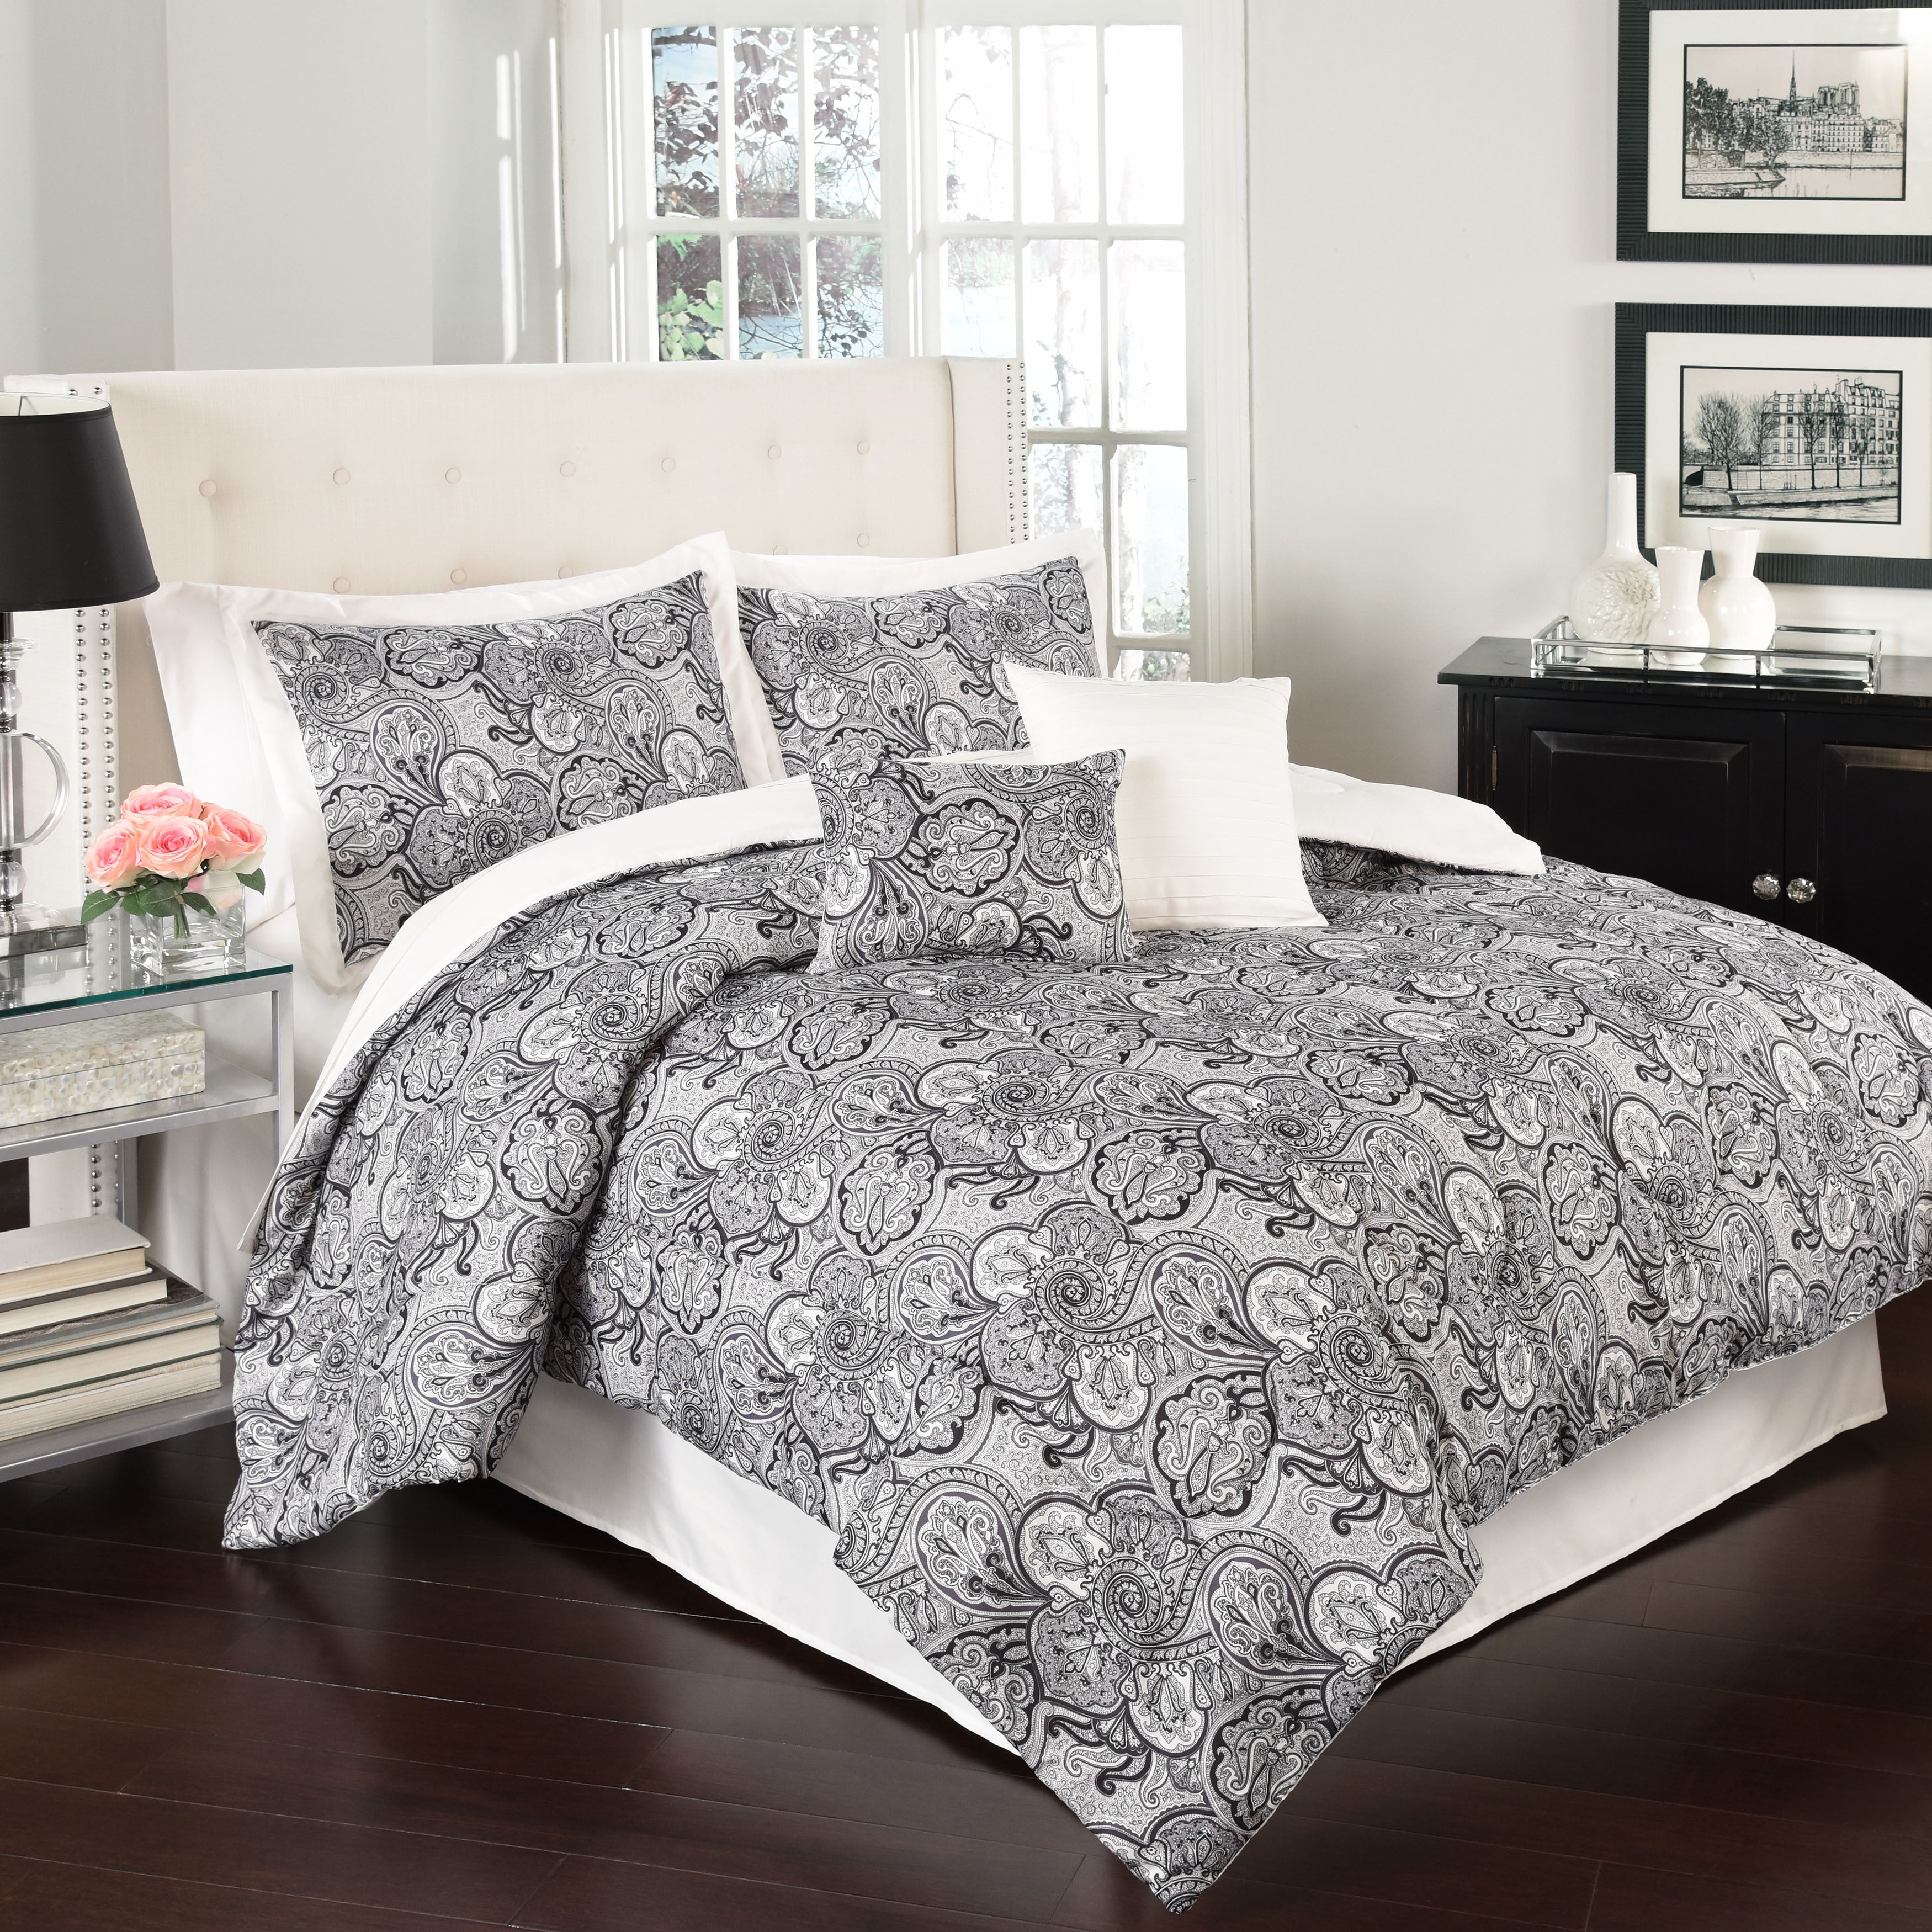 Traditions by Waverly Paddock Shawl 6 Piece Comforter Col...